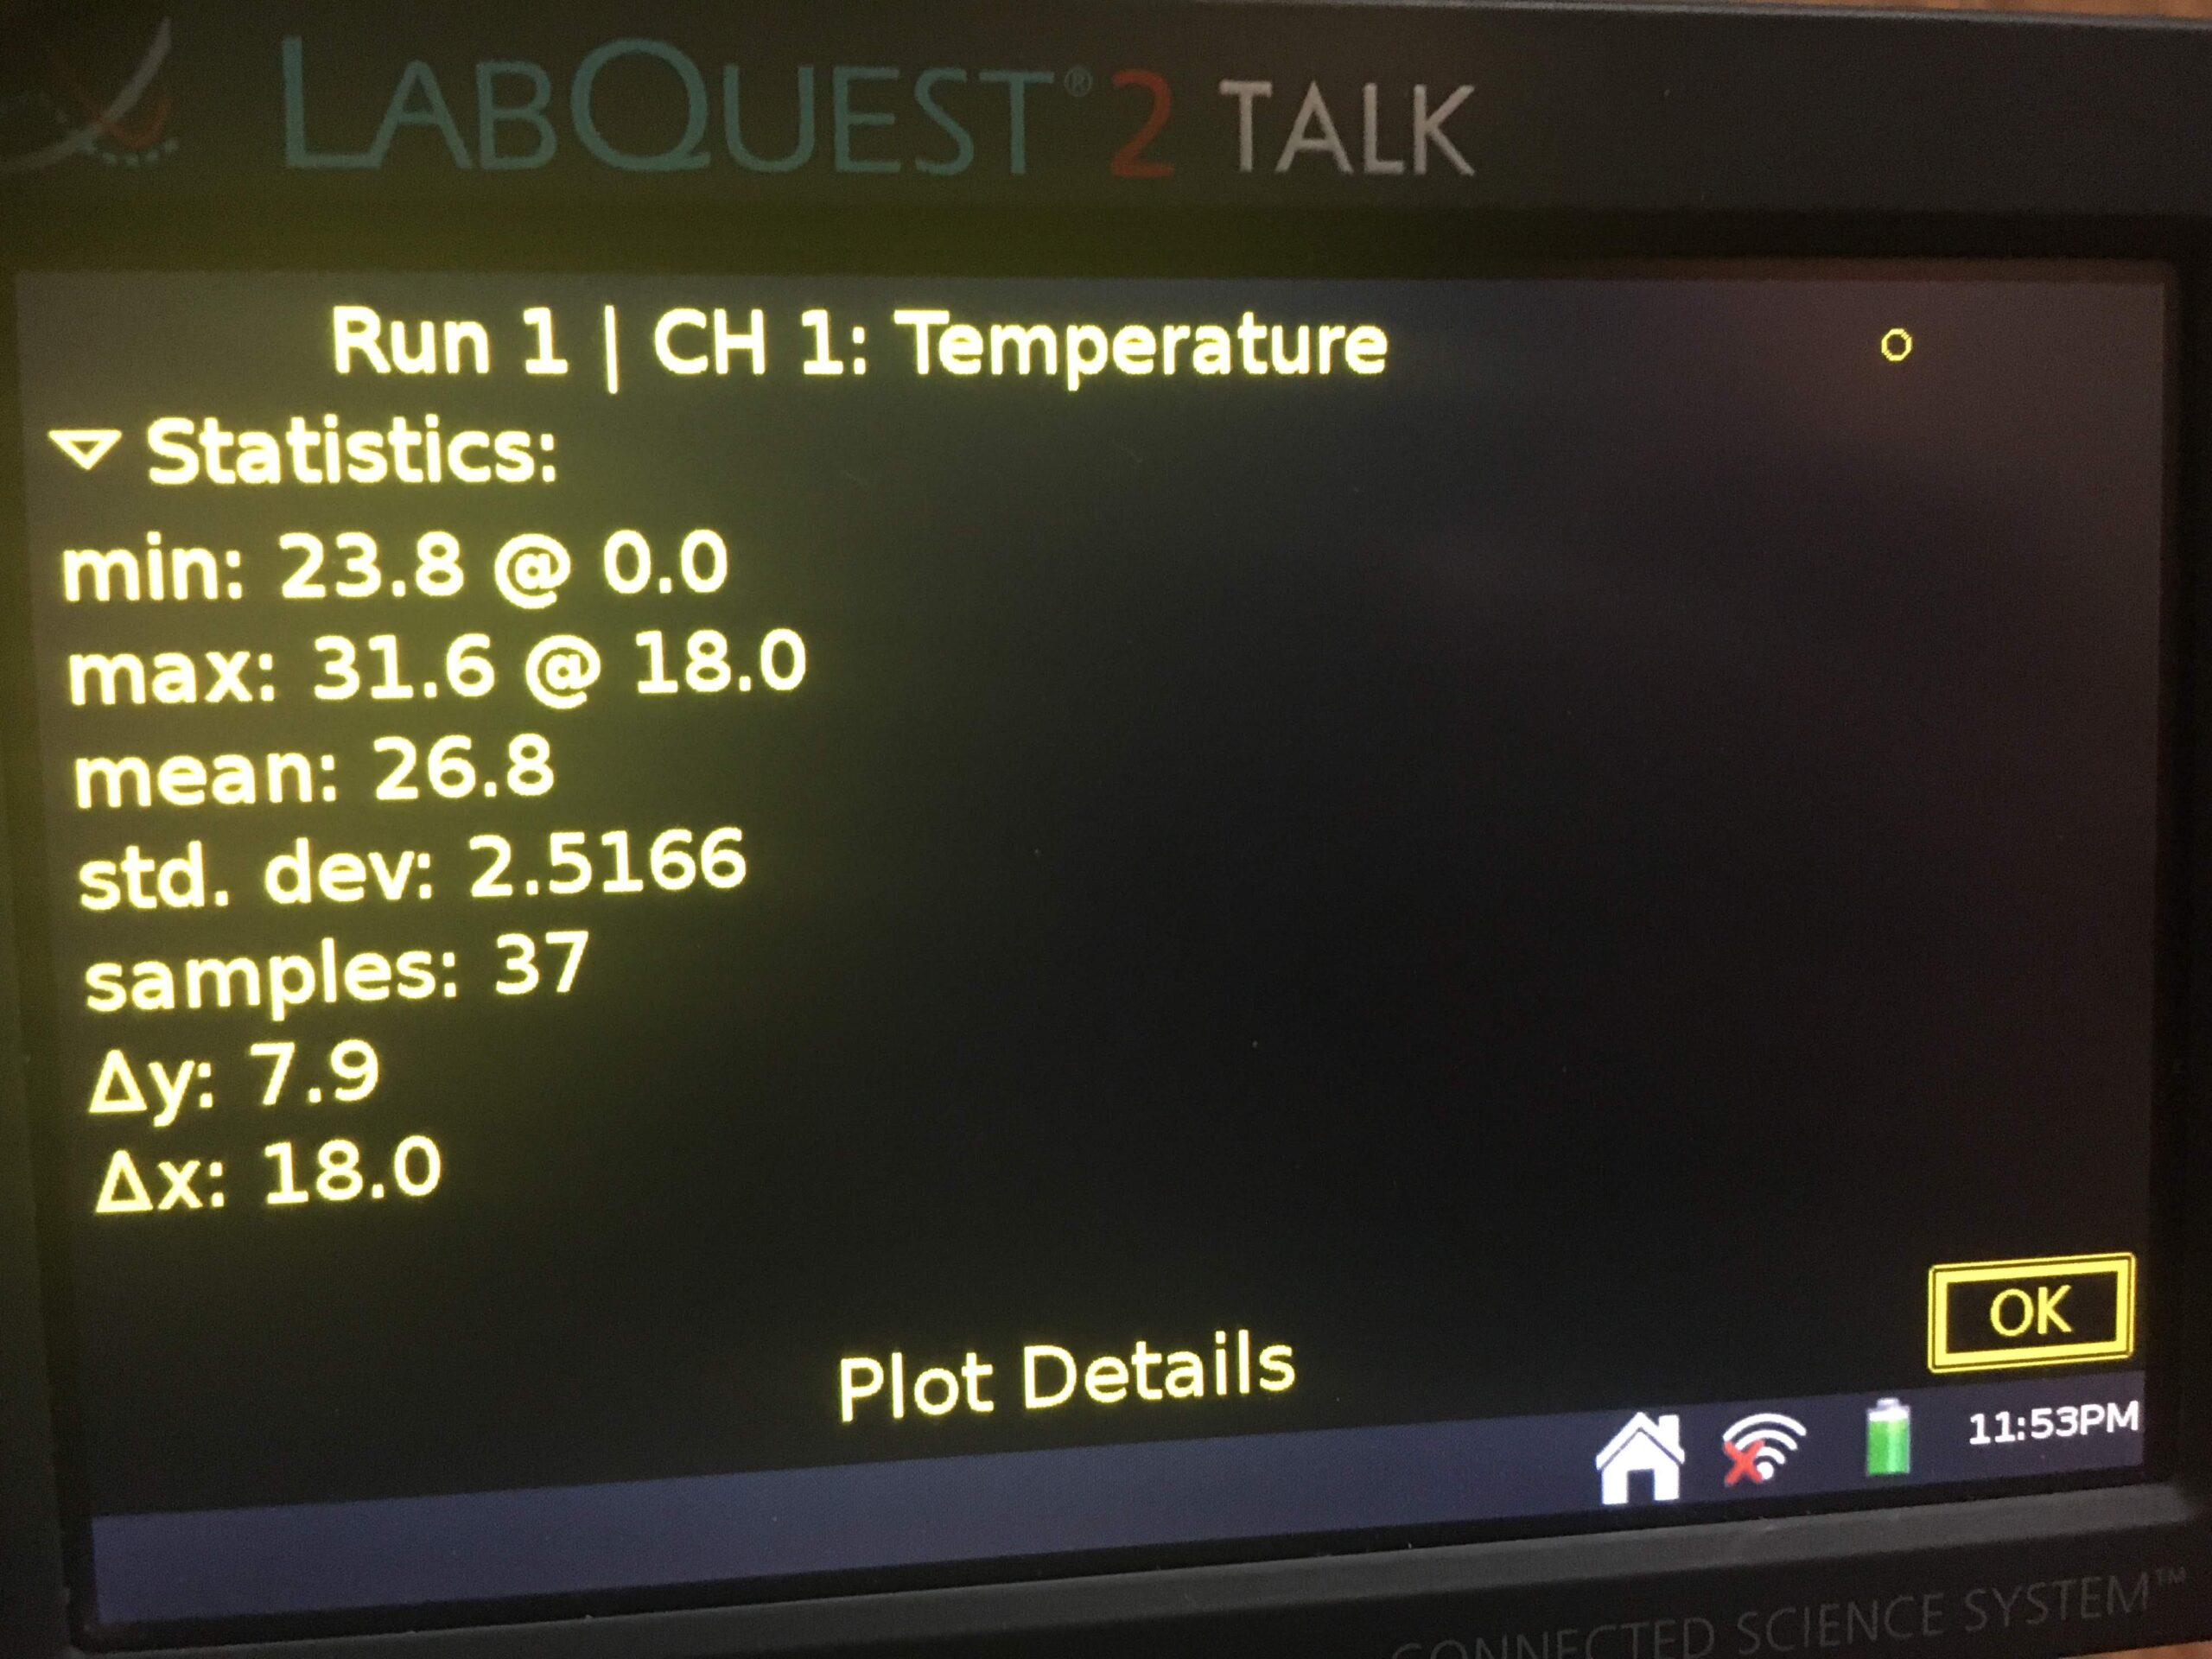 Close up of TLQ stats screen for a temperature run displayed in high contrast.